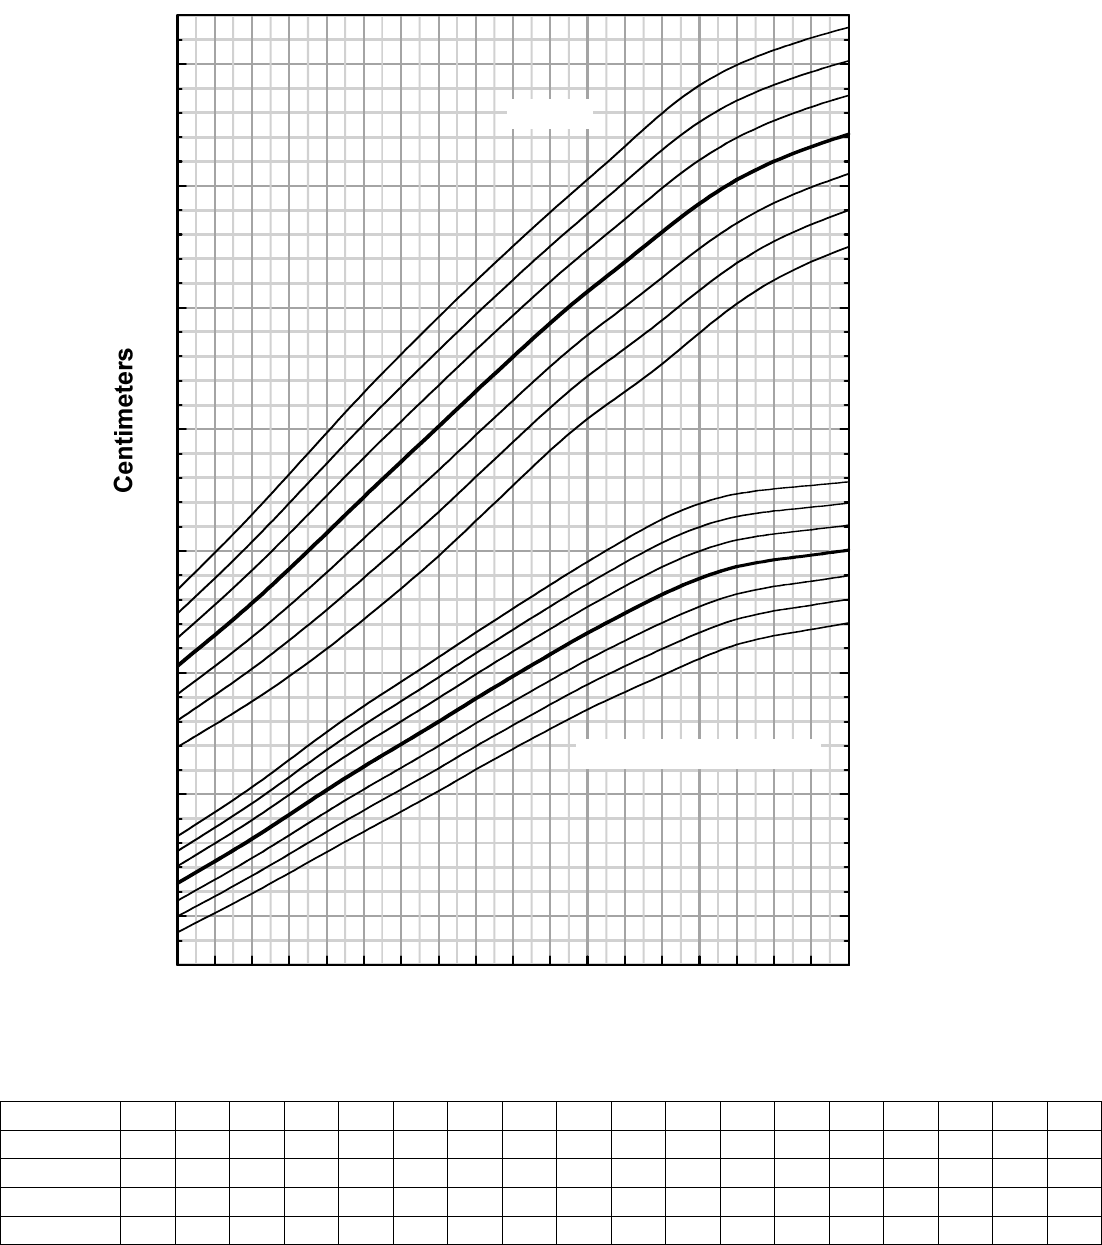 fetal growth chart percentile - photo #33